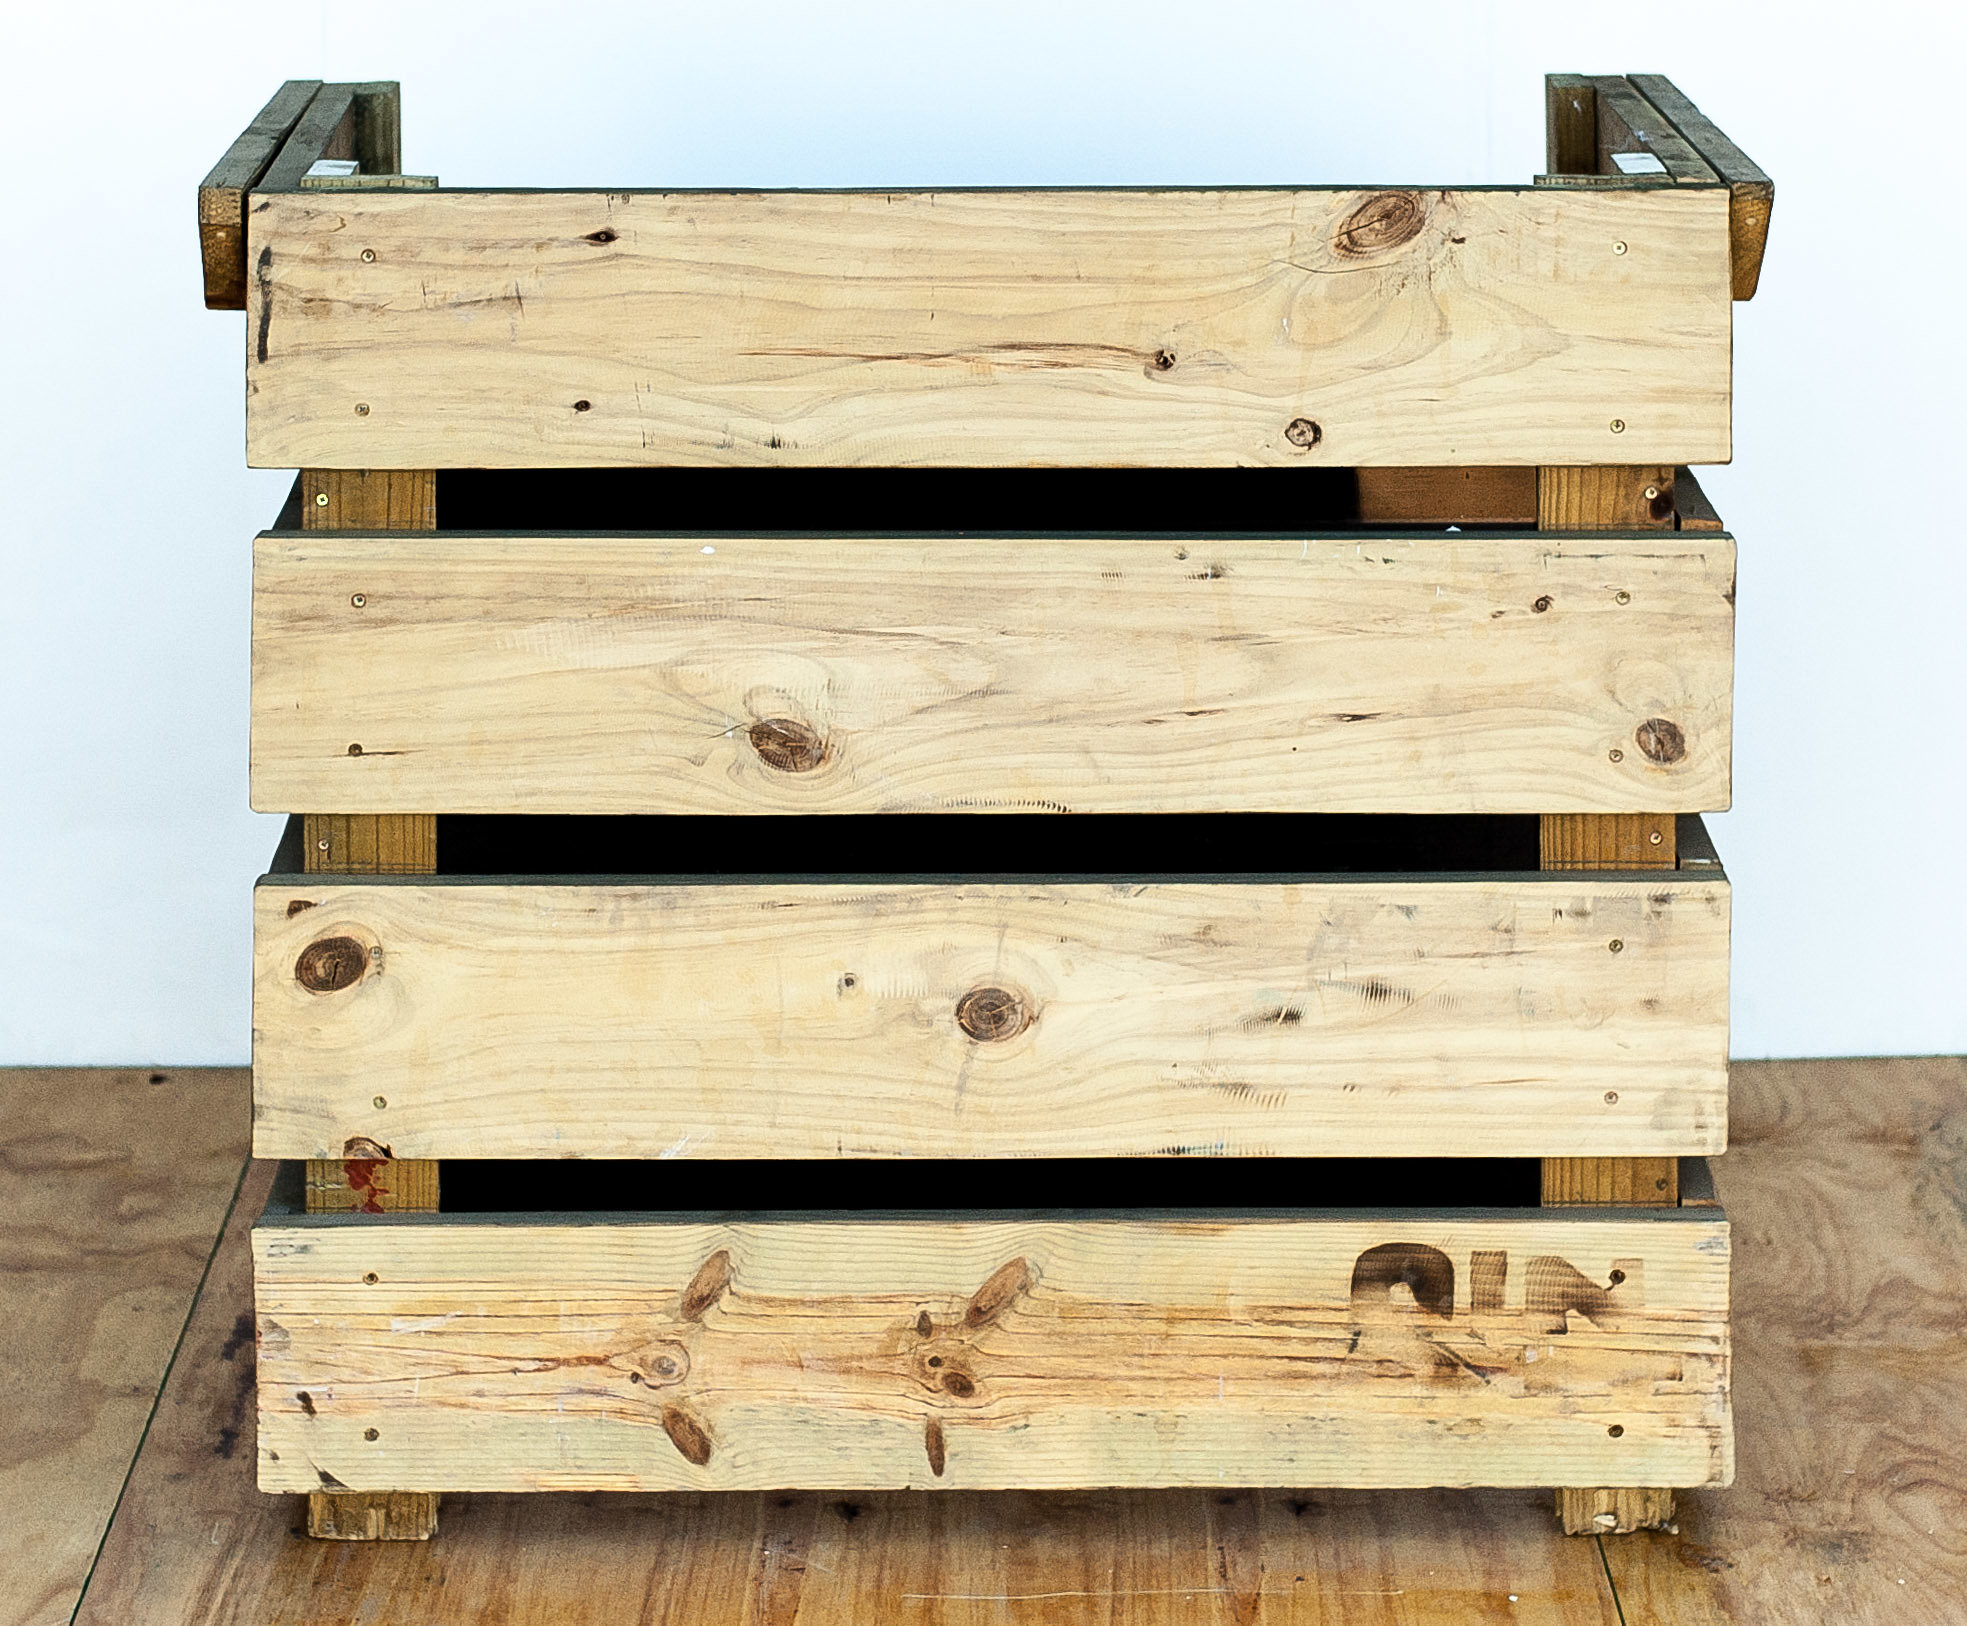 Wooden Dj Booth – In and Out SA